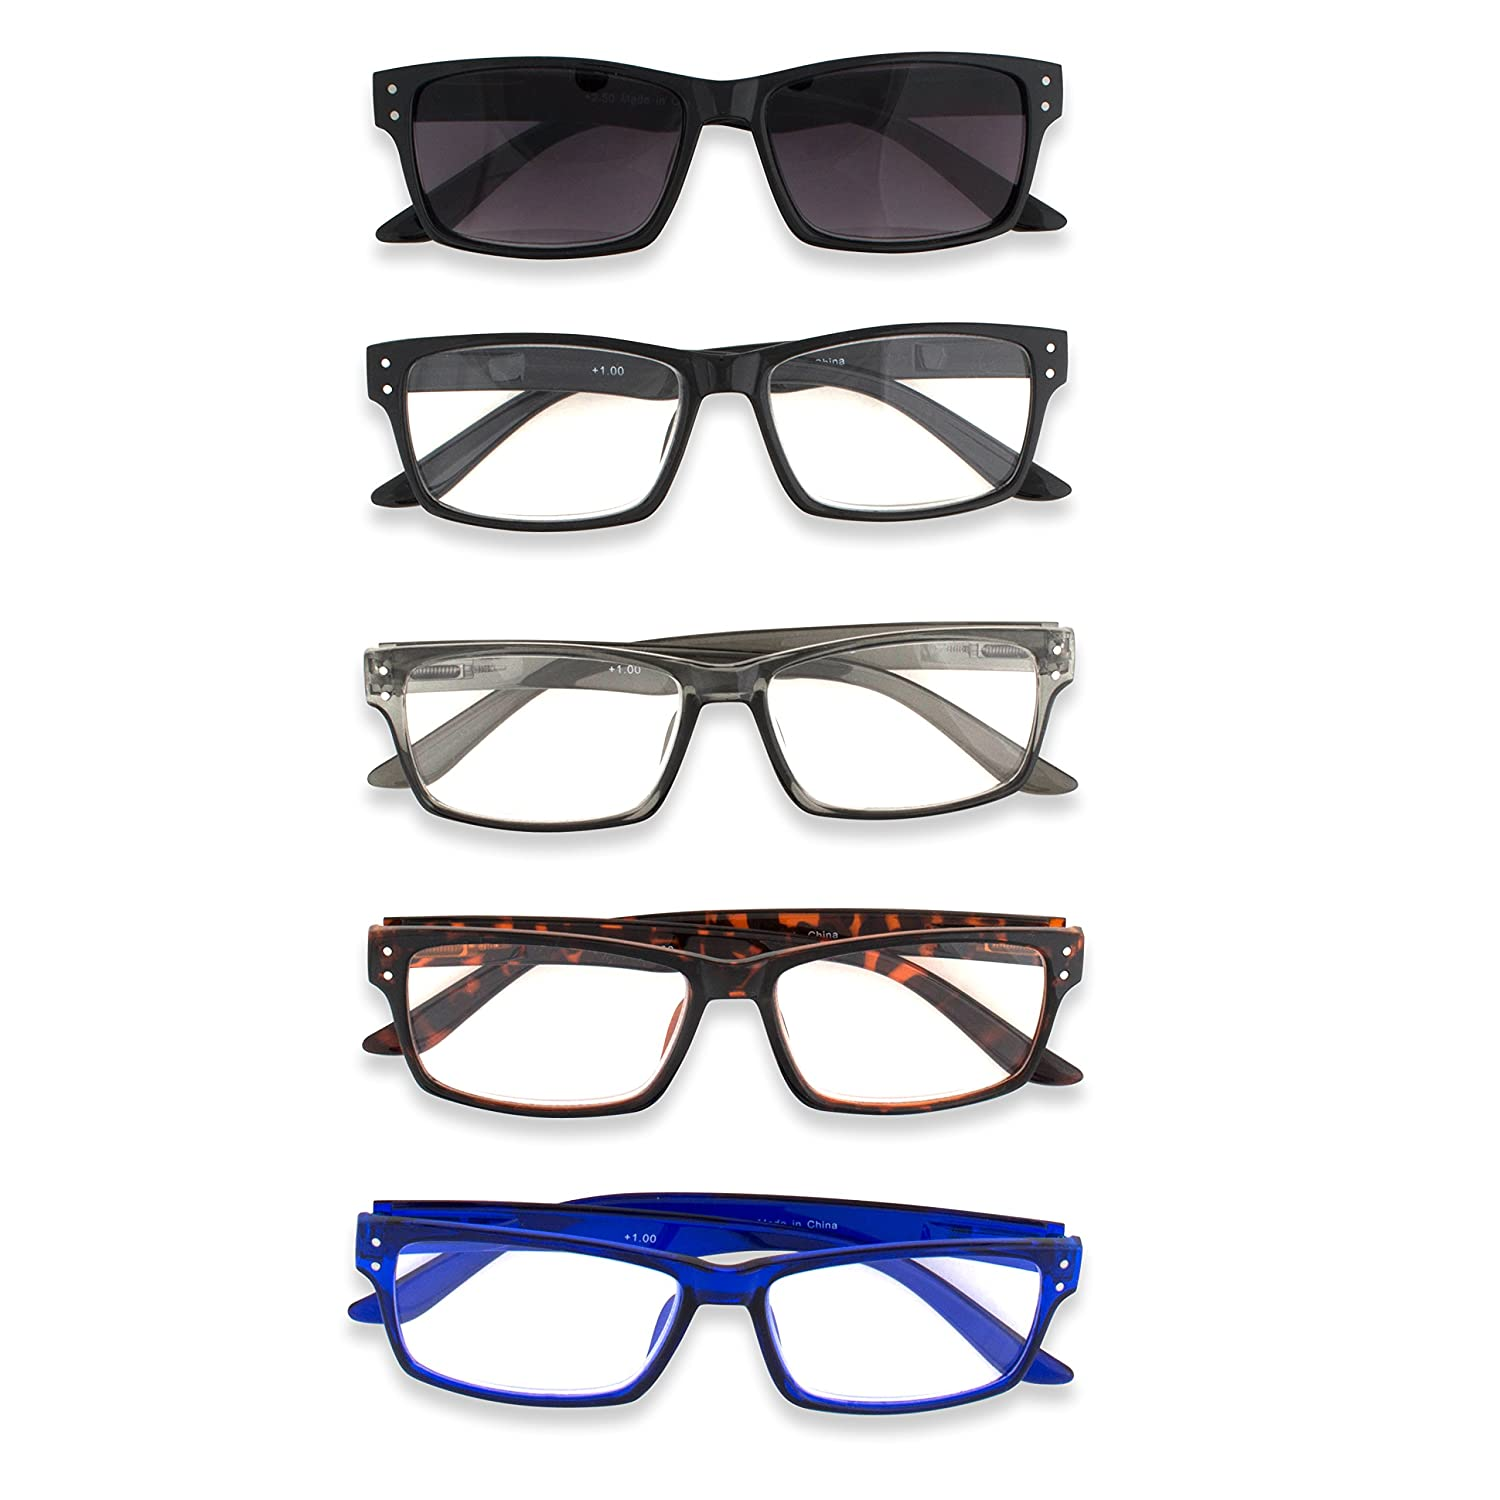 5482ecb45d37 Amazon.com  Inner Vision 5-Pack Reading Glasses Set for Men   Women - (1.25  x Magnification) - Includes  1 Outdoor Reading Sunglasses + 4 Clear Readers   ...